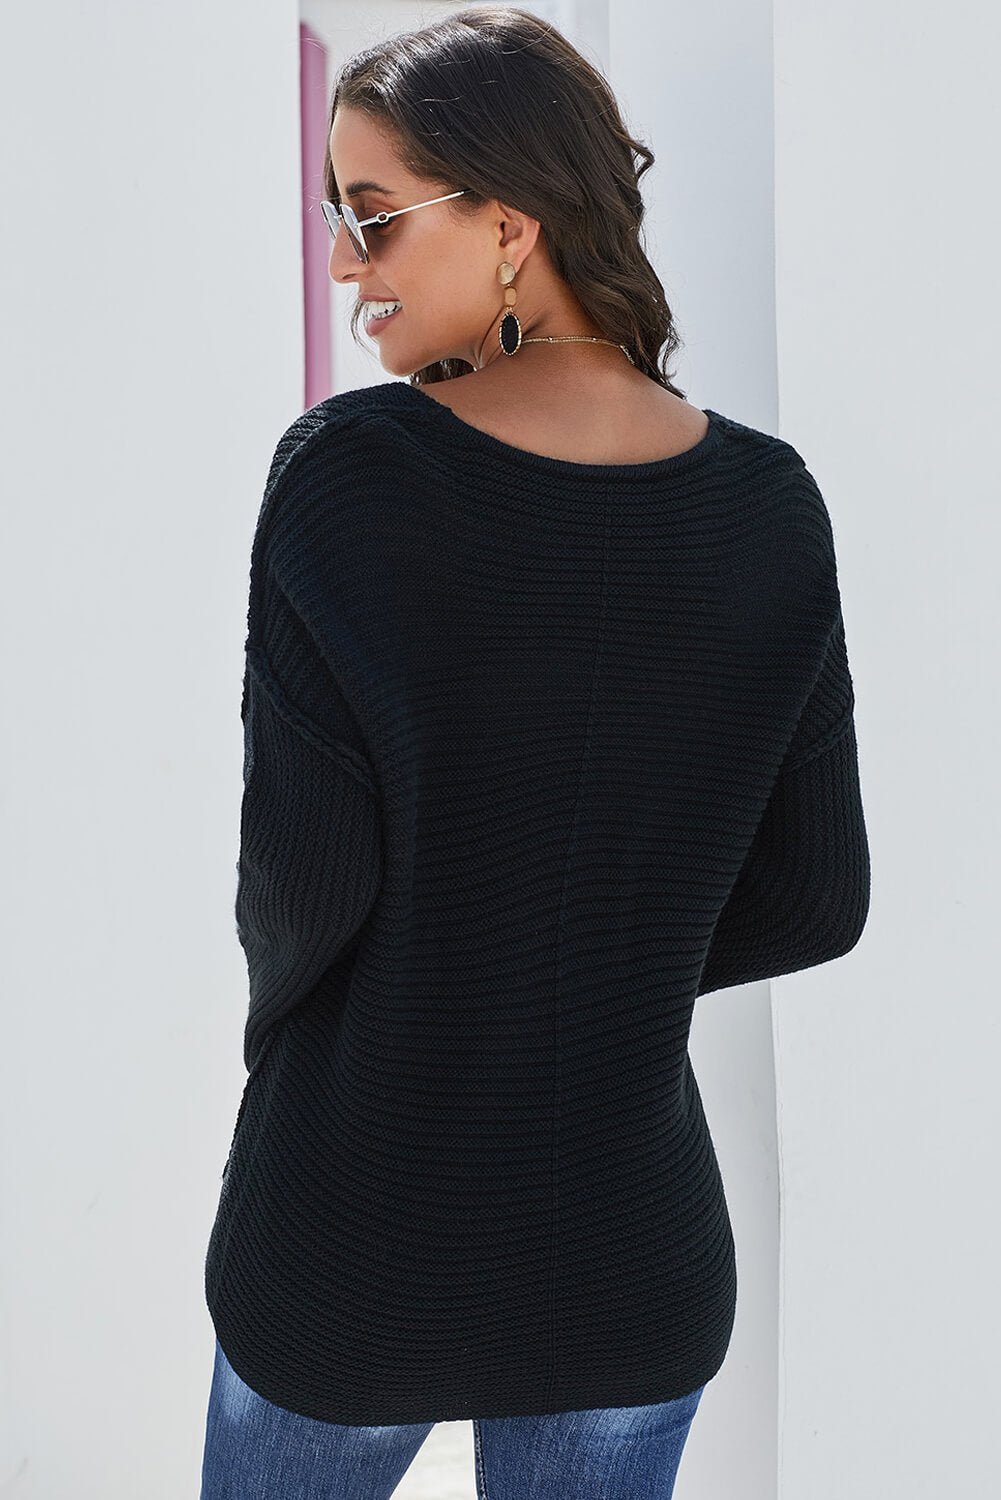 Black Textured V Neck Pullover Sweater-Outerwear, Sweaters & Cardigans-Azura Exchange